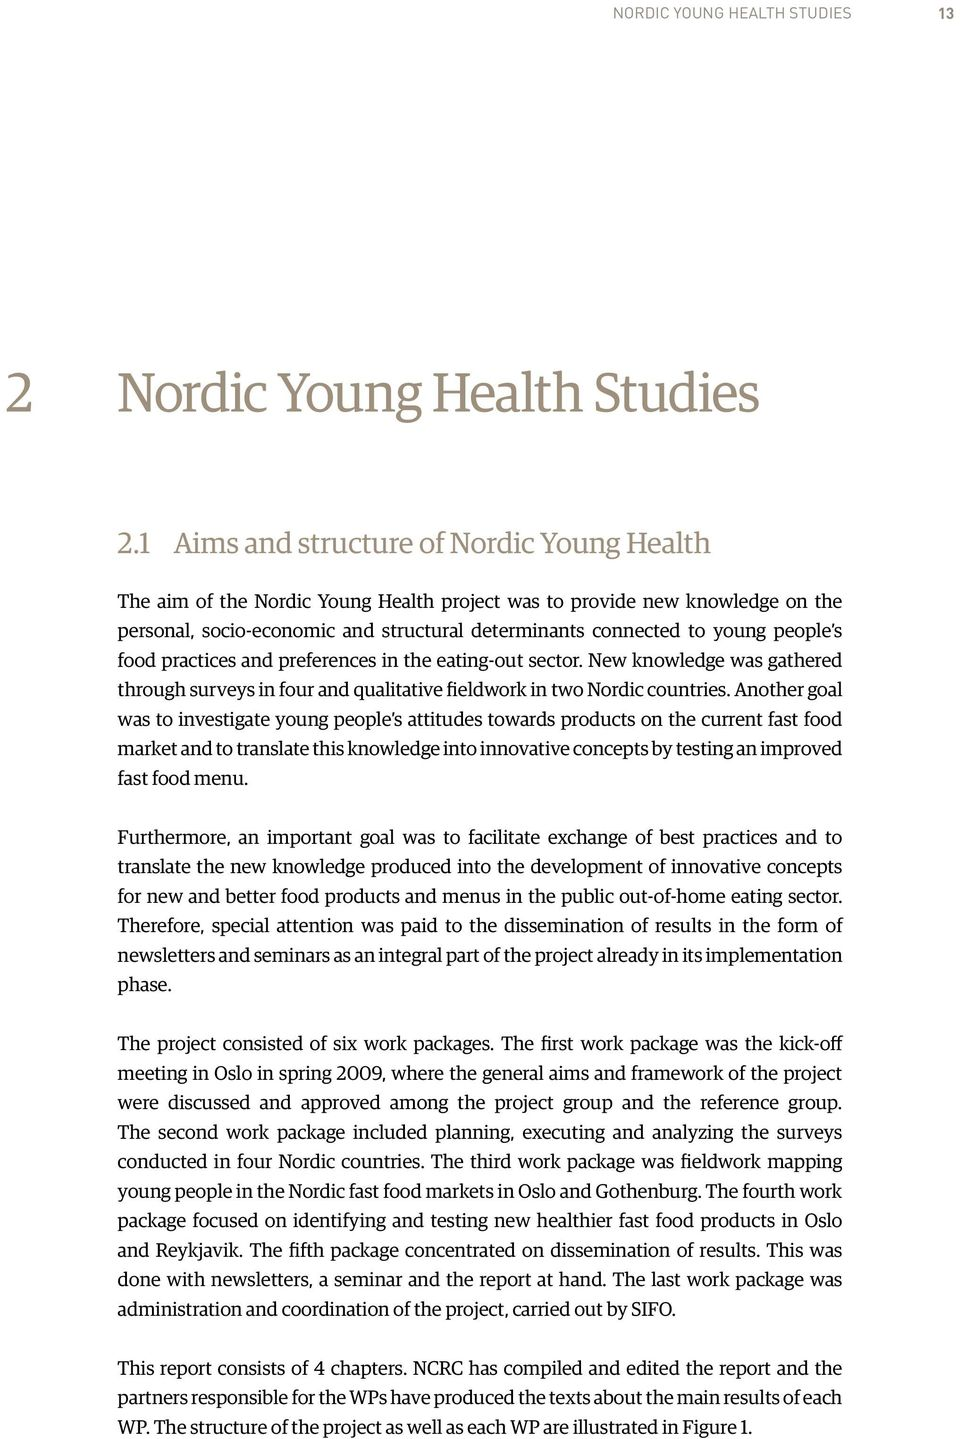 people s food practices and preferences in the eating-out sector. New knowledge was gathered through surveys in four and qualitative fieldwork in two Nordic countries.